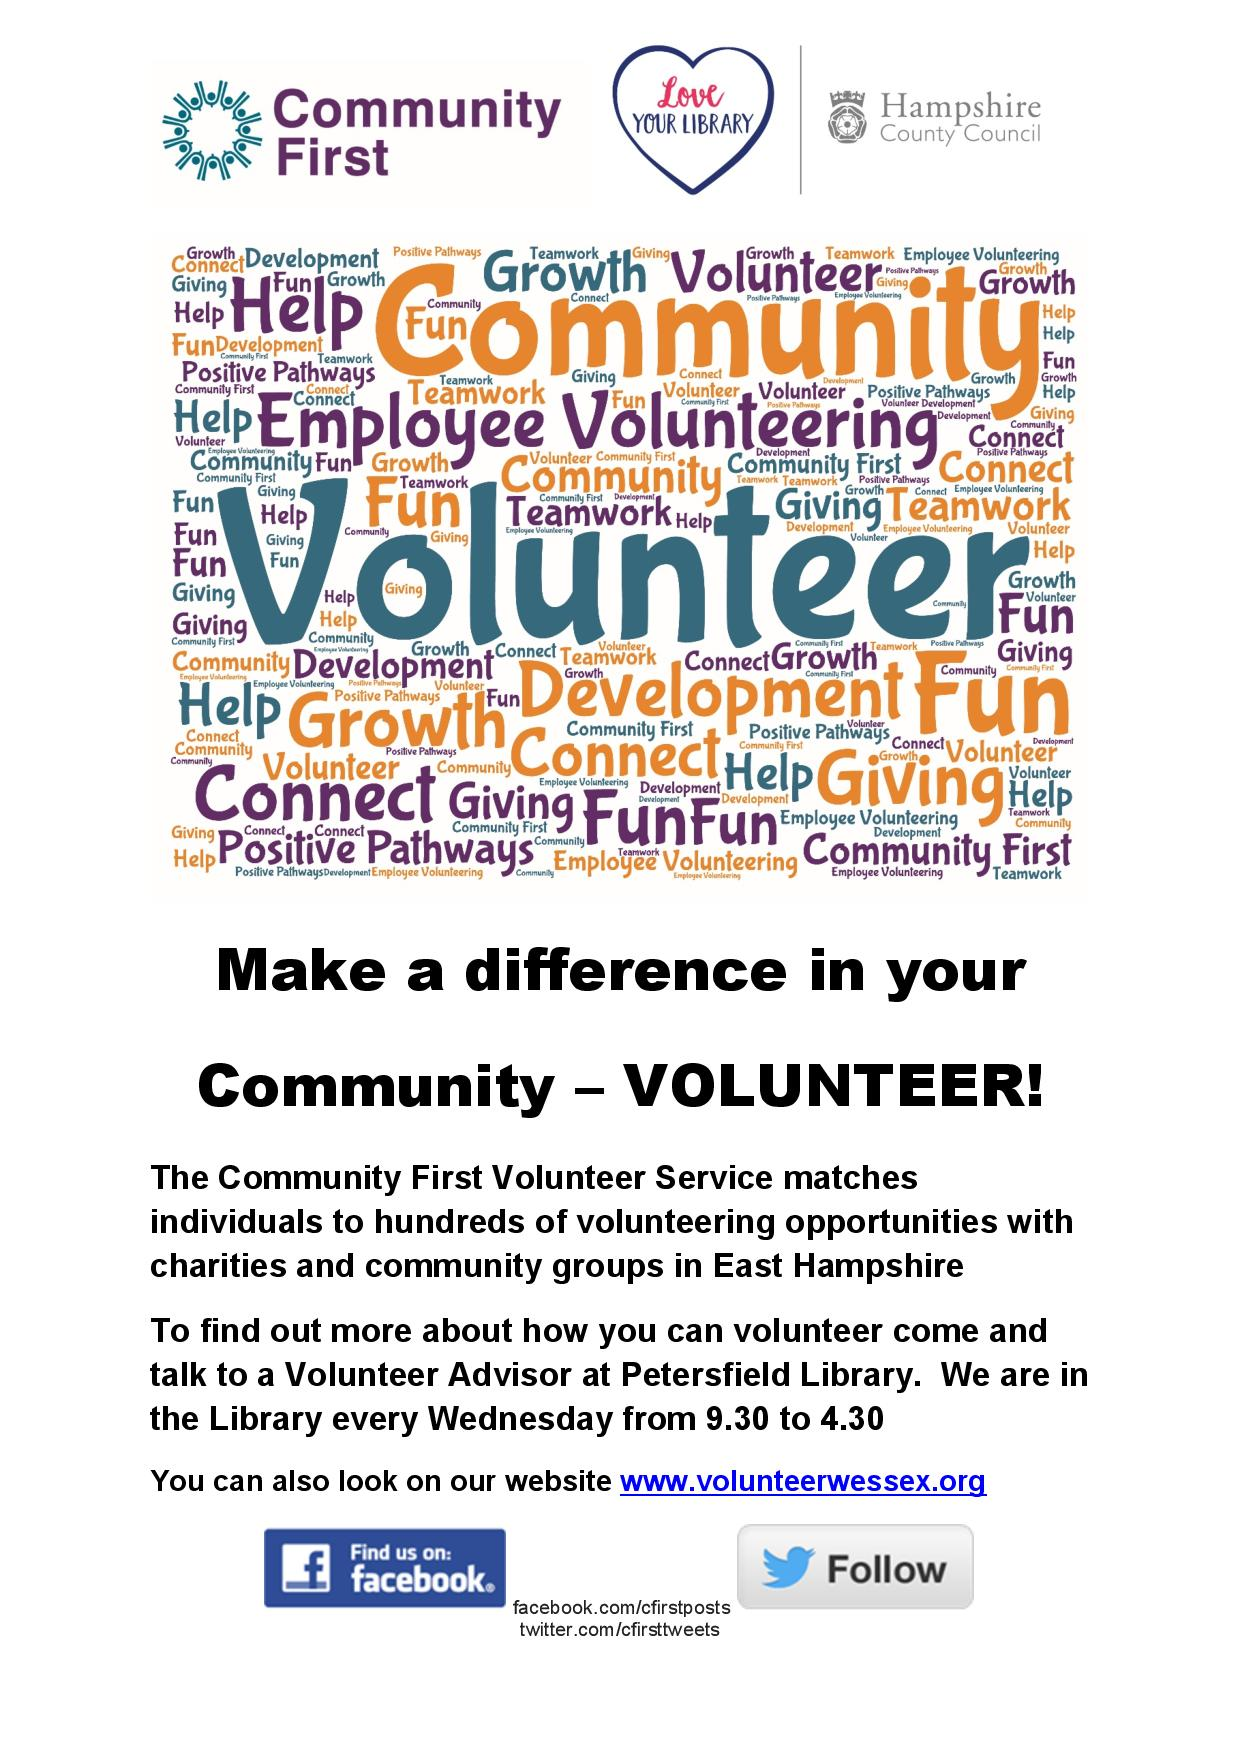 Communities First - New Year, New Opportunities!